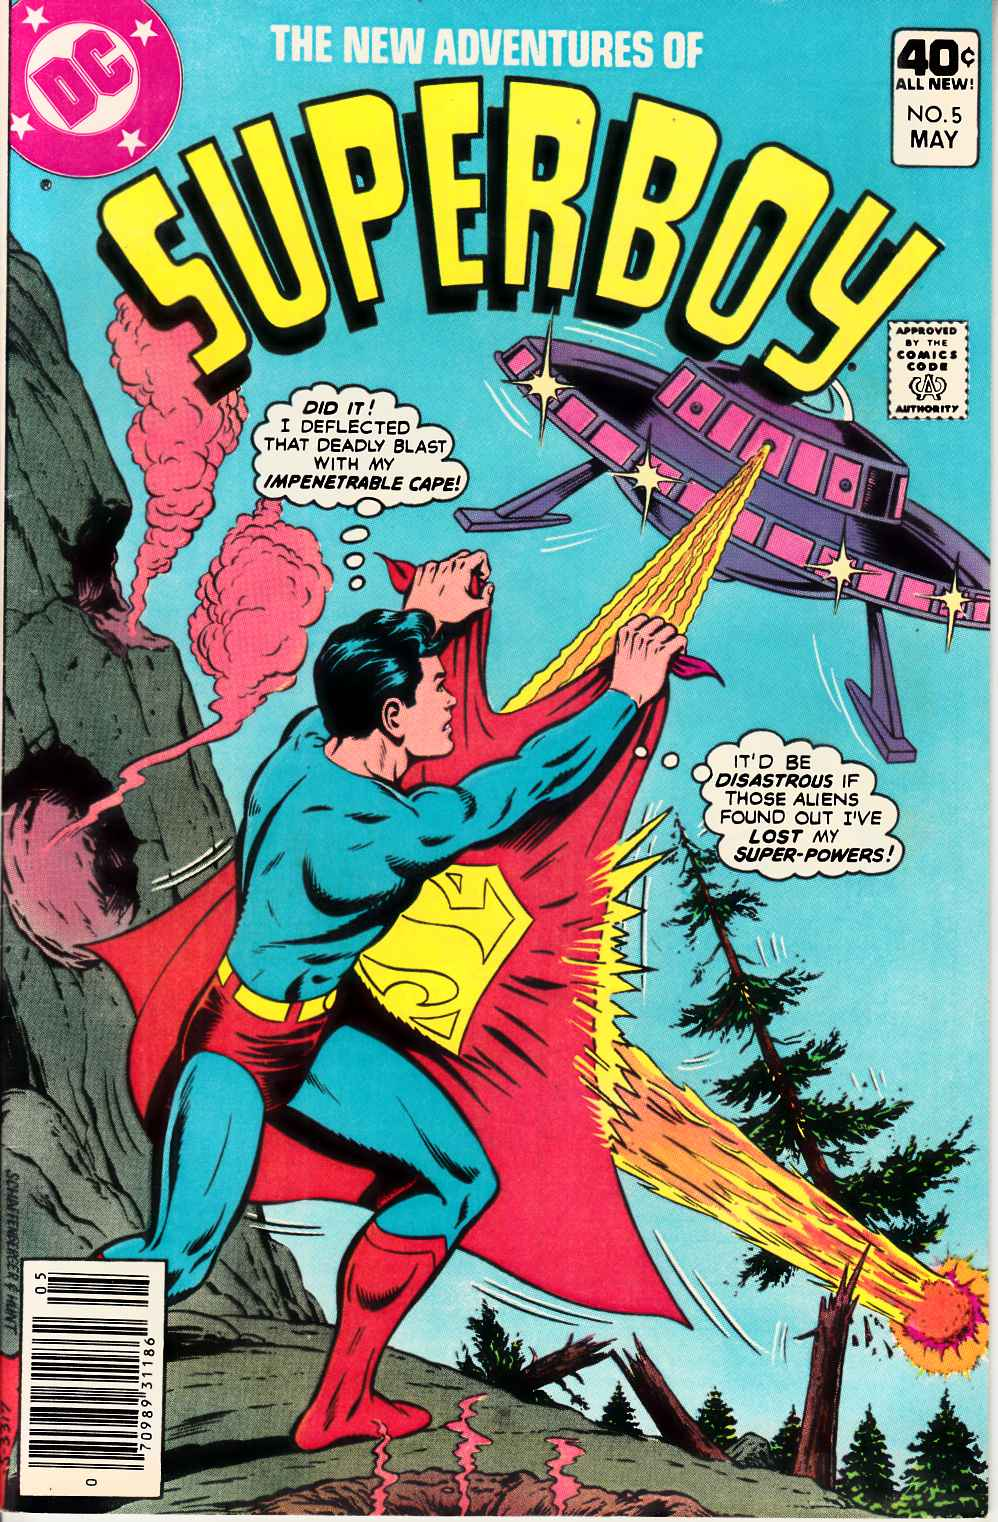 New Adventures of Superboy #5 Near Mint (9.4) [DC Comic] THUMBNAIL